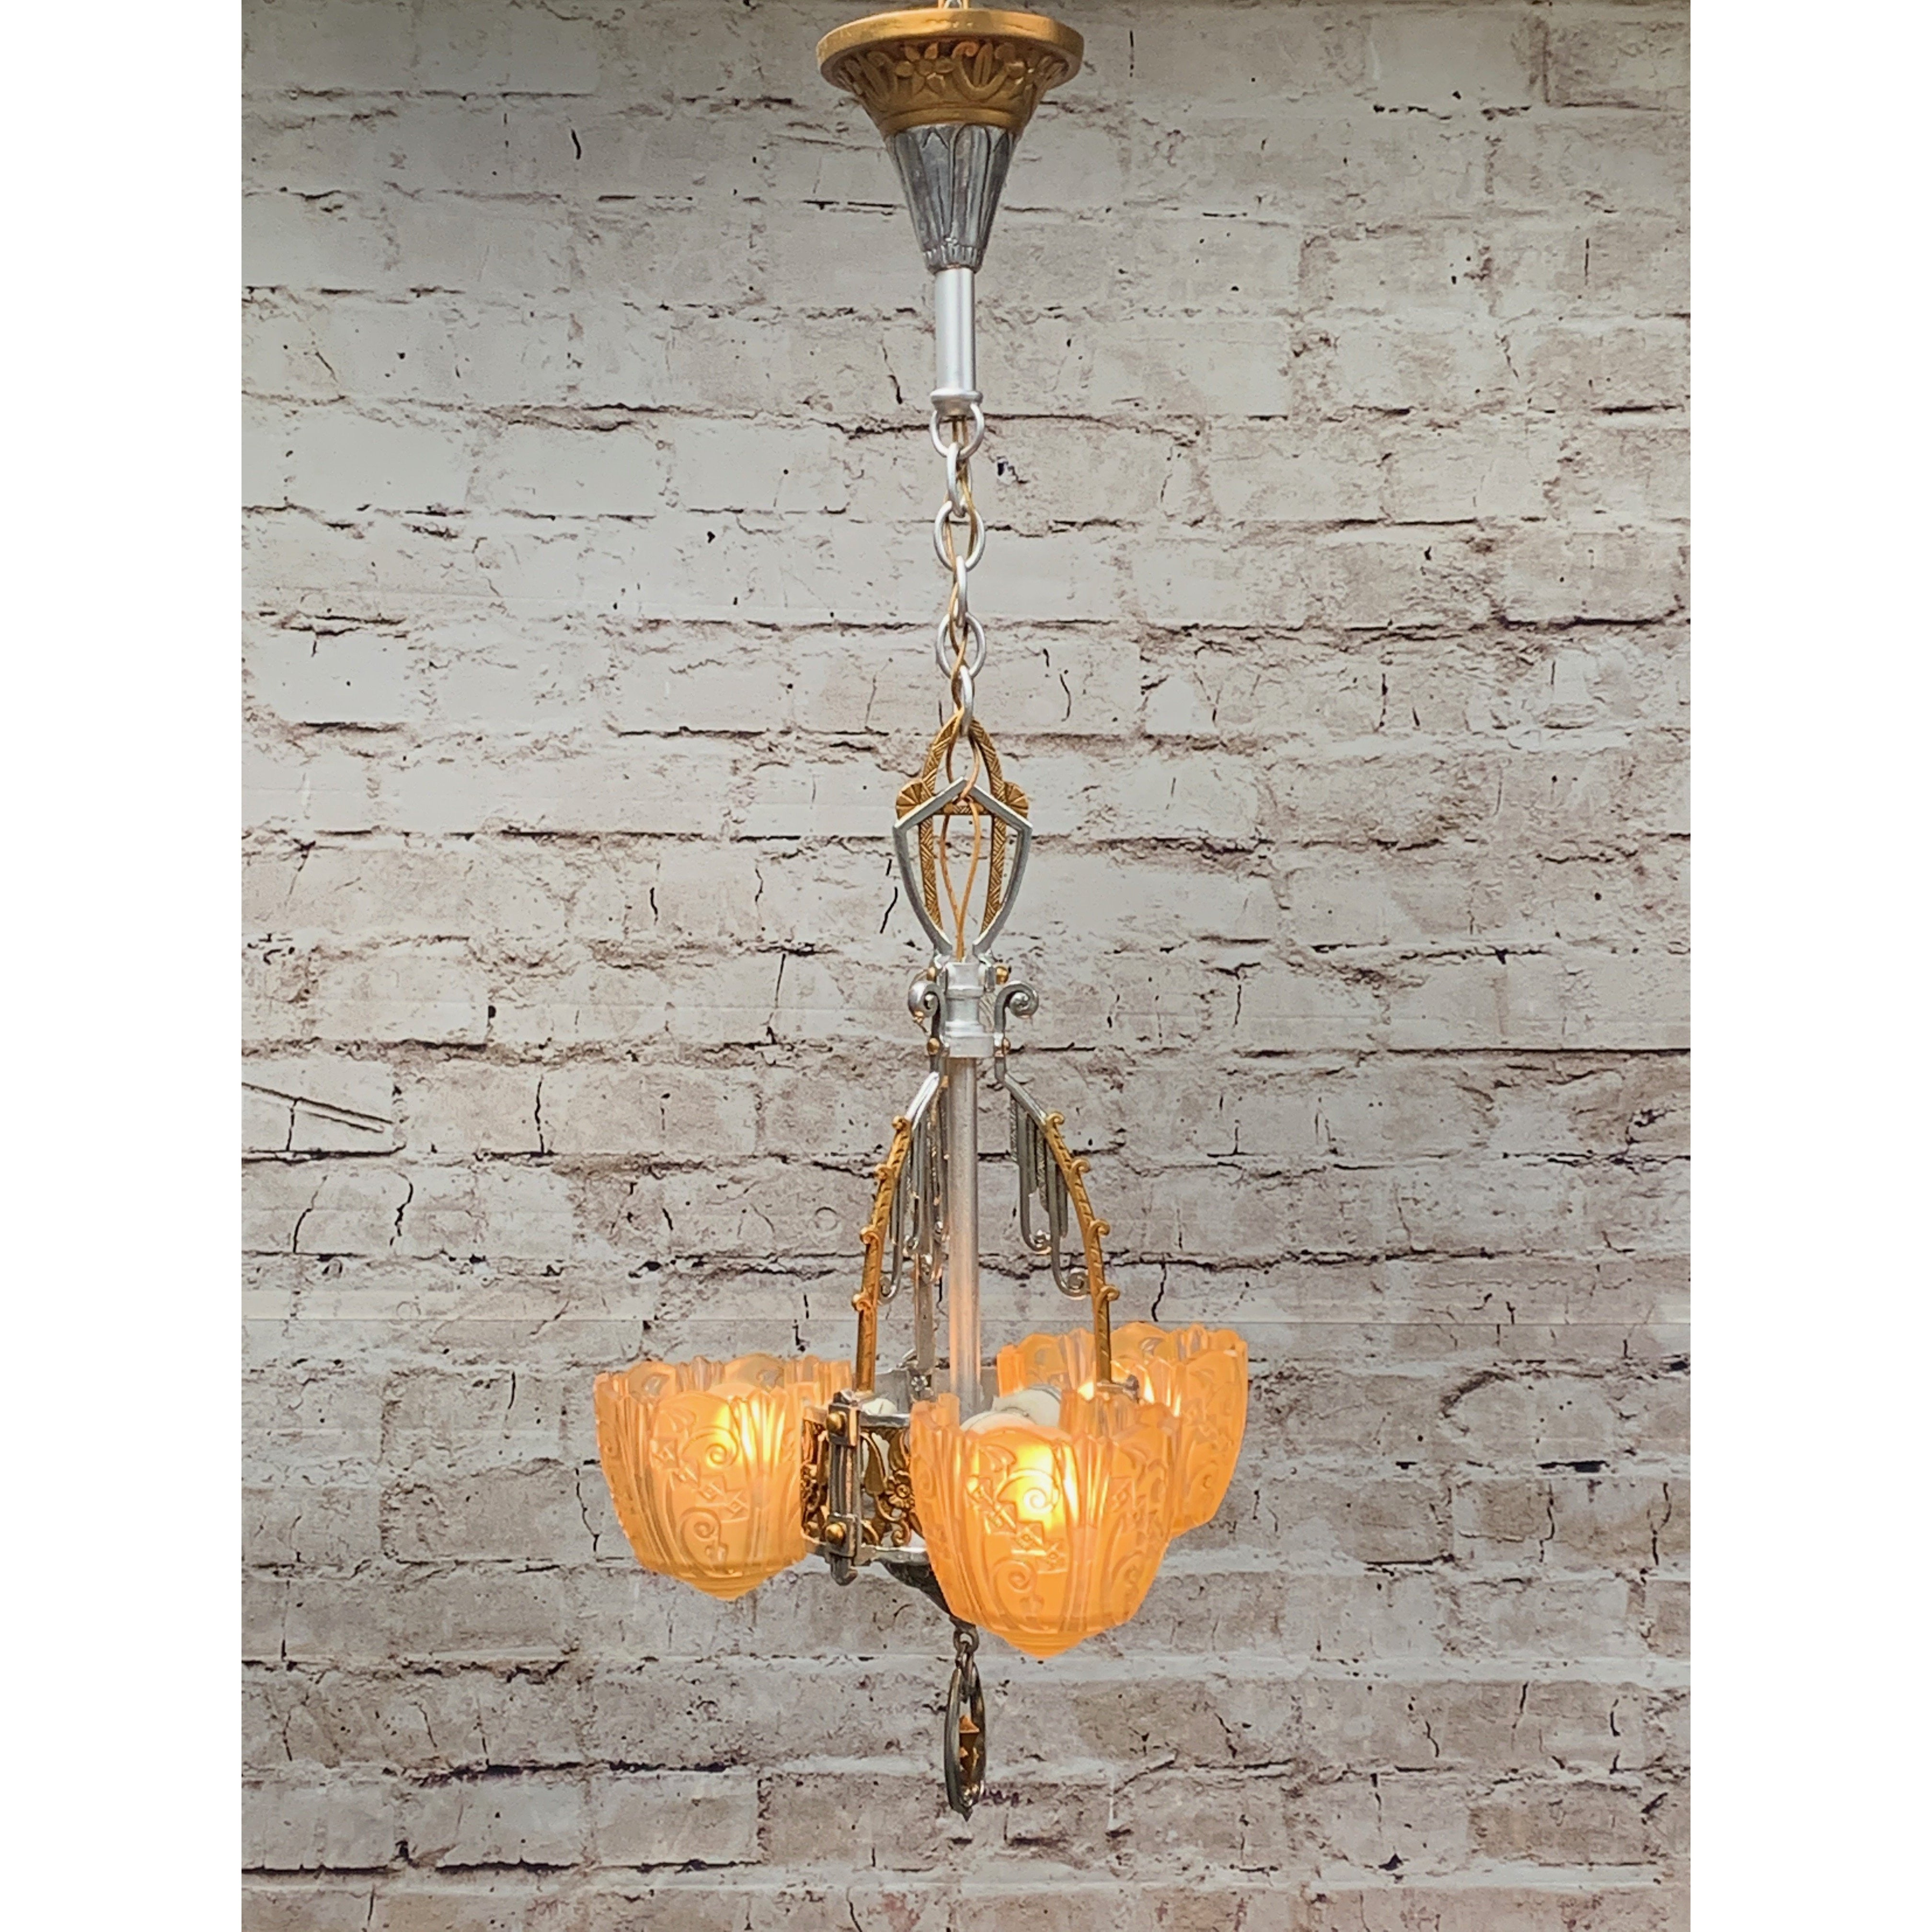 Polished 3 Light by Lincoln, Amber Shades #1924 - Filament Vintage Lighting